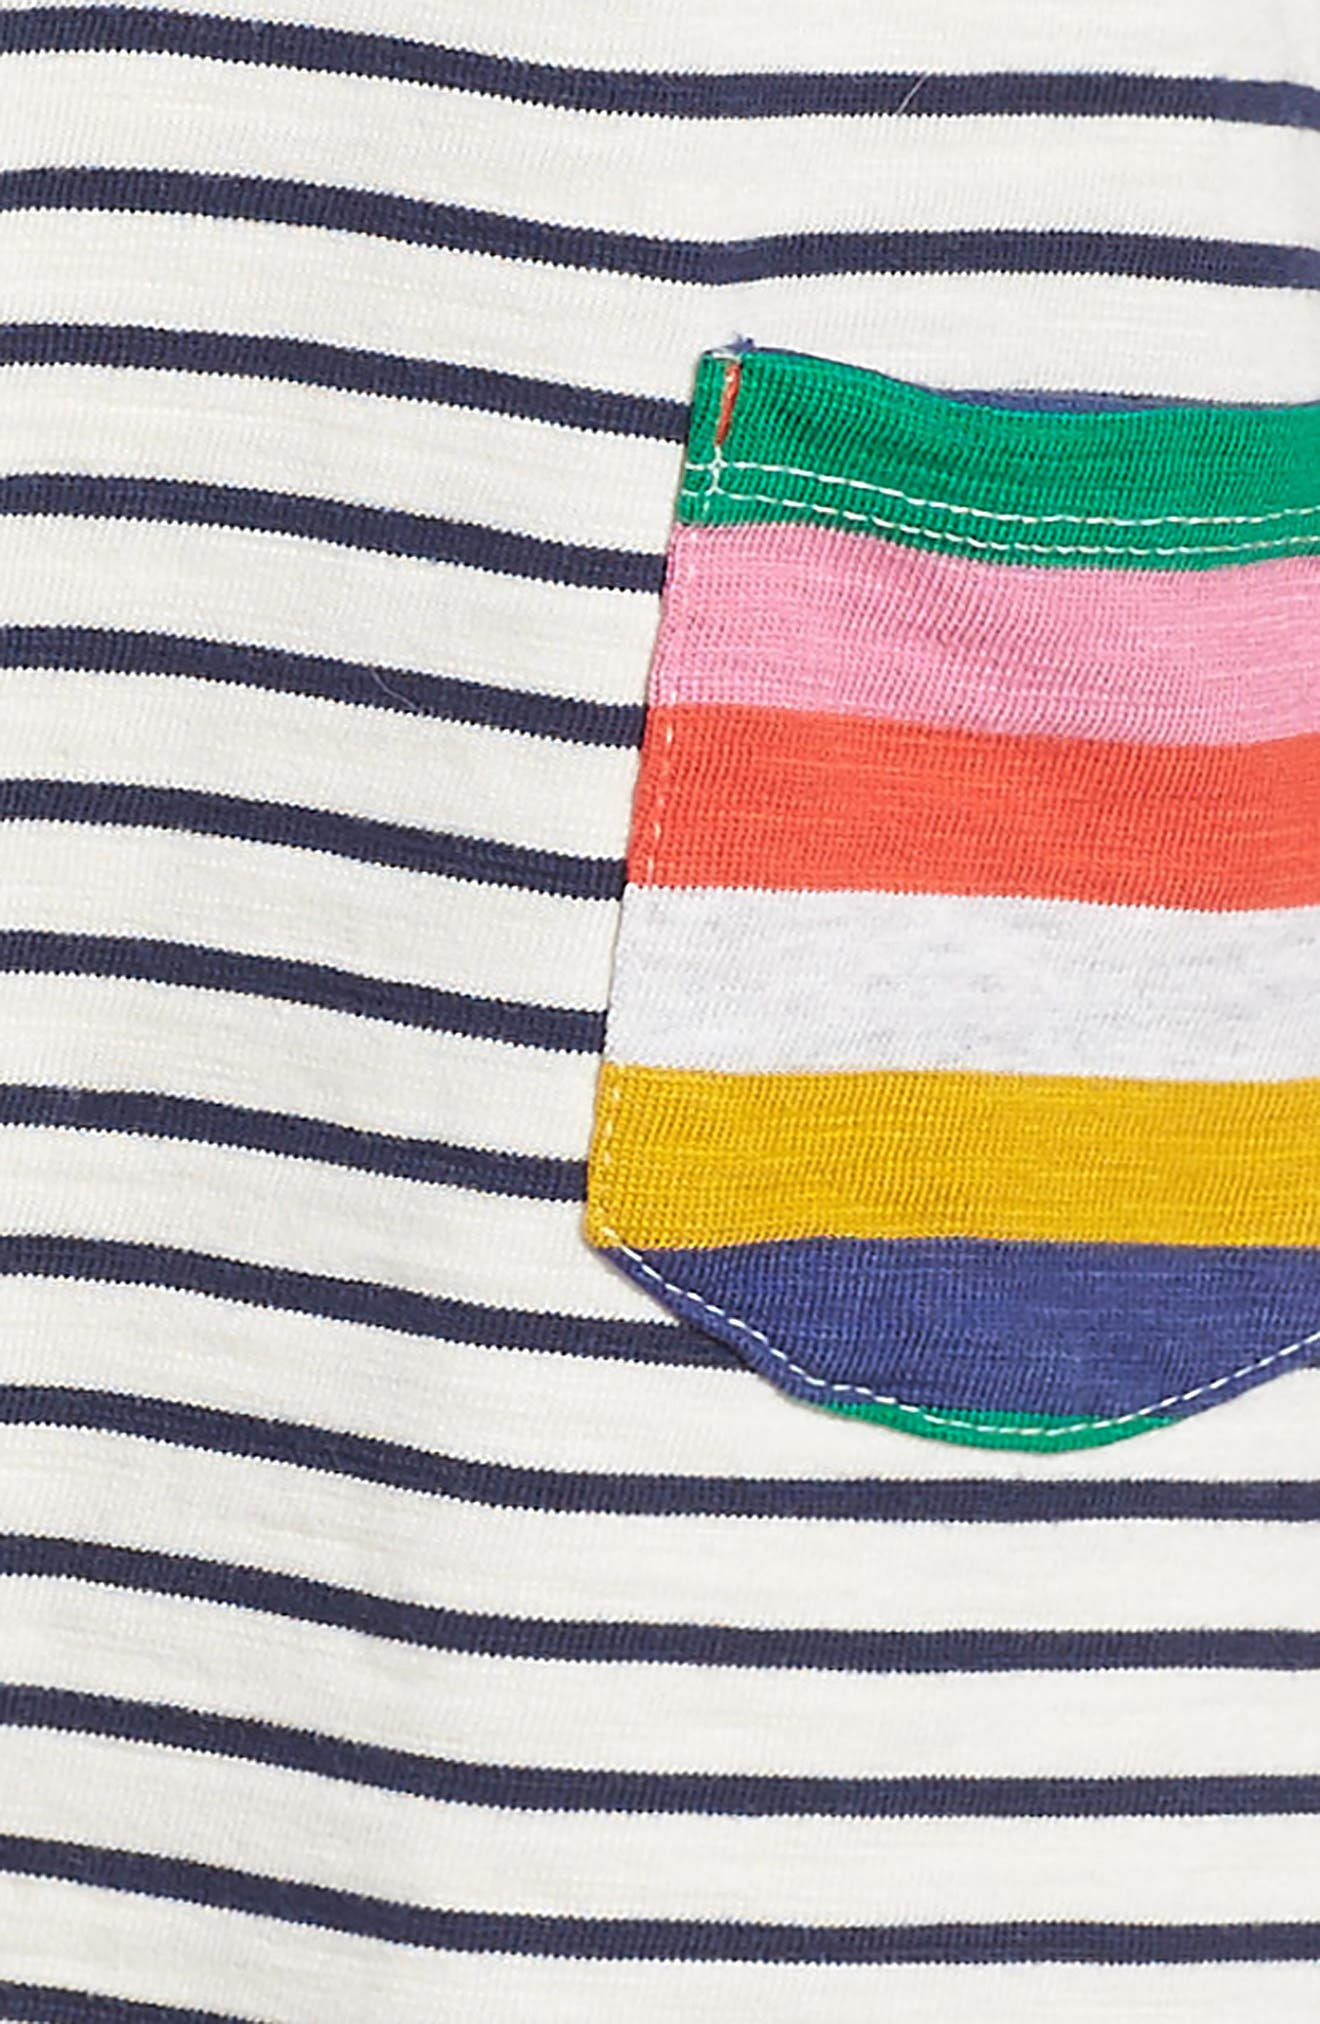 Alternate Image 3  - Mini Boden Stripy Jersey Dress (Toddler Girls, Little Girls & Big Girls)